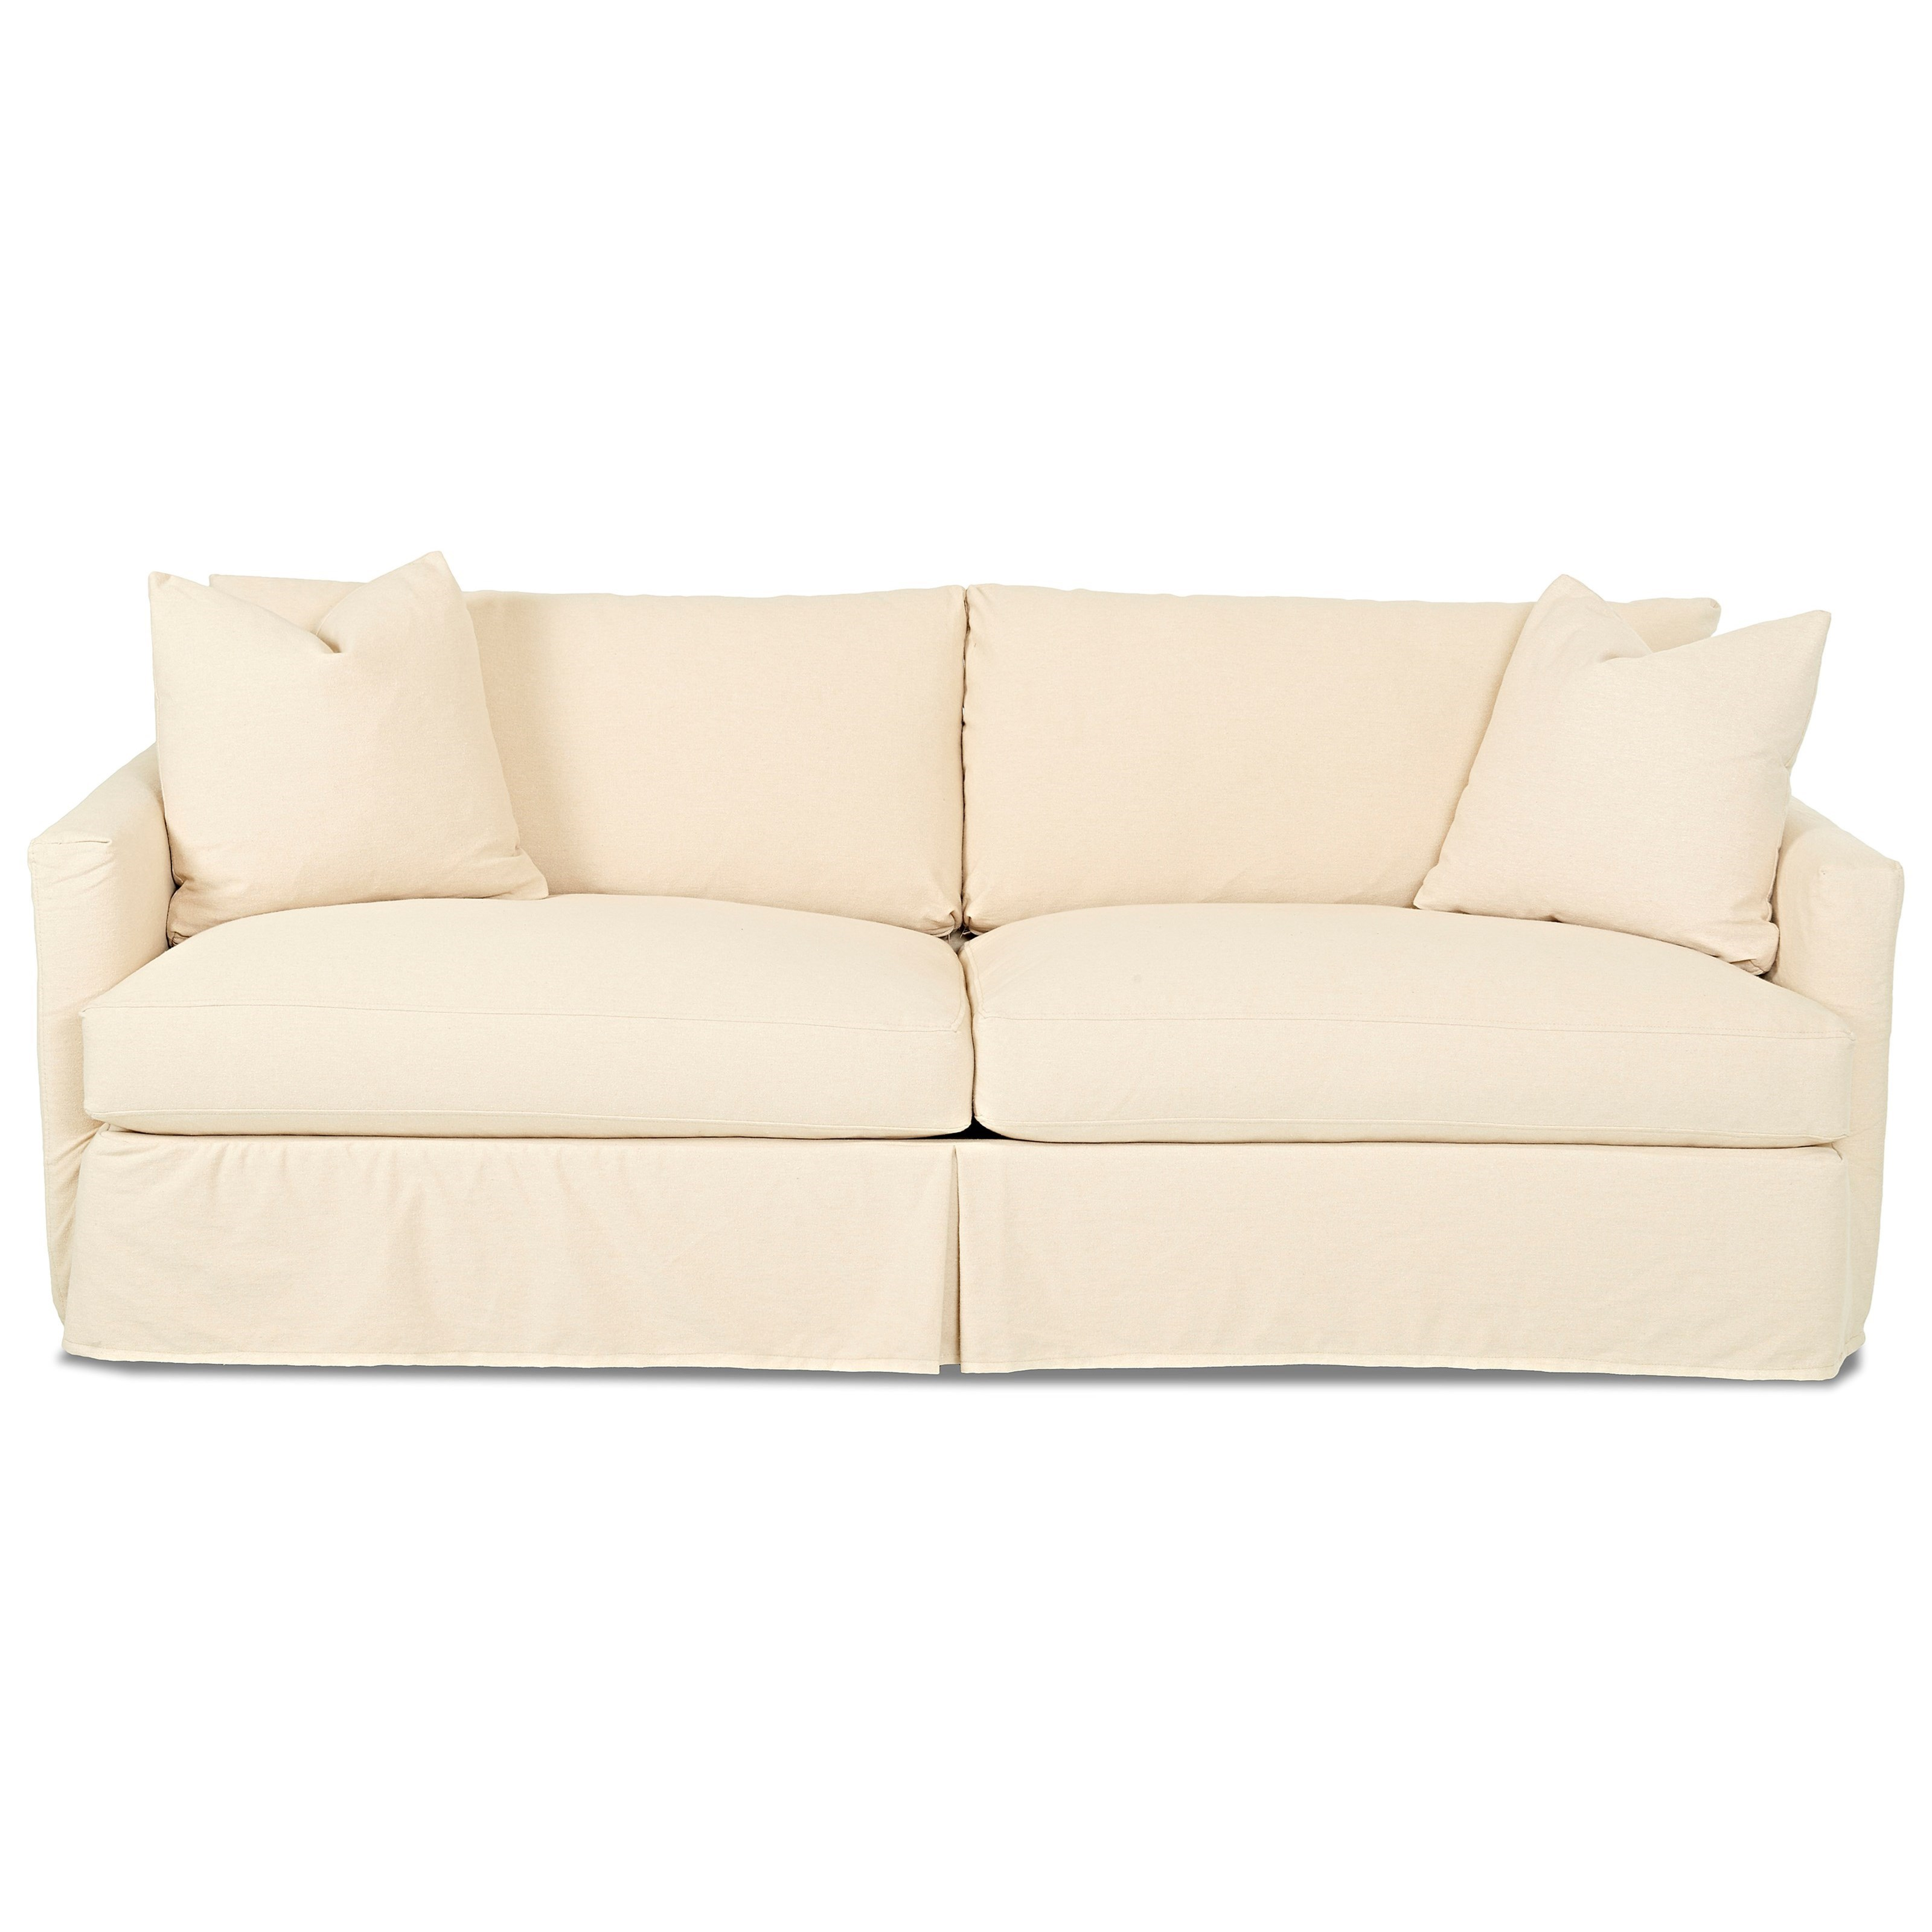 Klaussner Leisure Extra Large Sofa with Slipcover - Item Number: D4133 XS